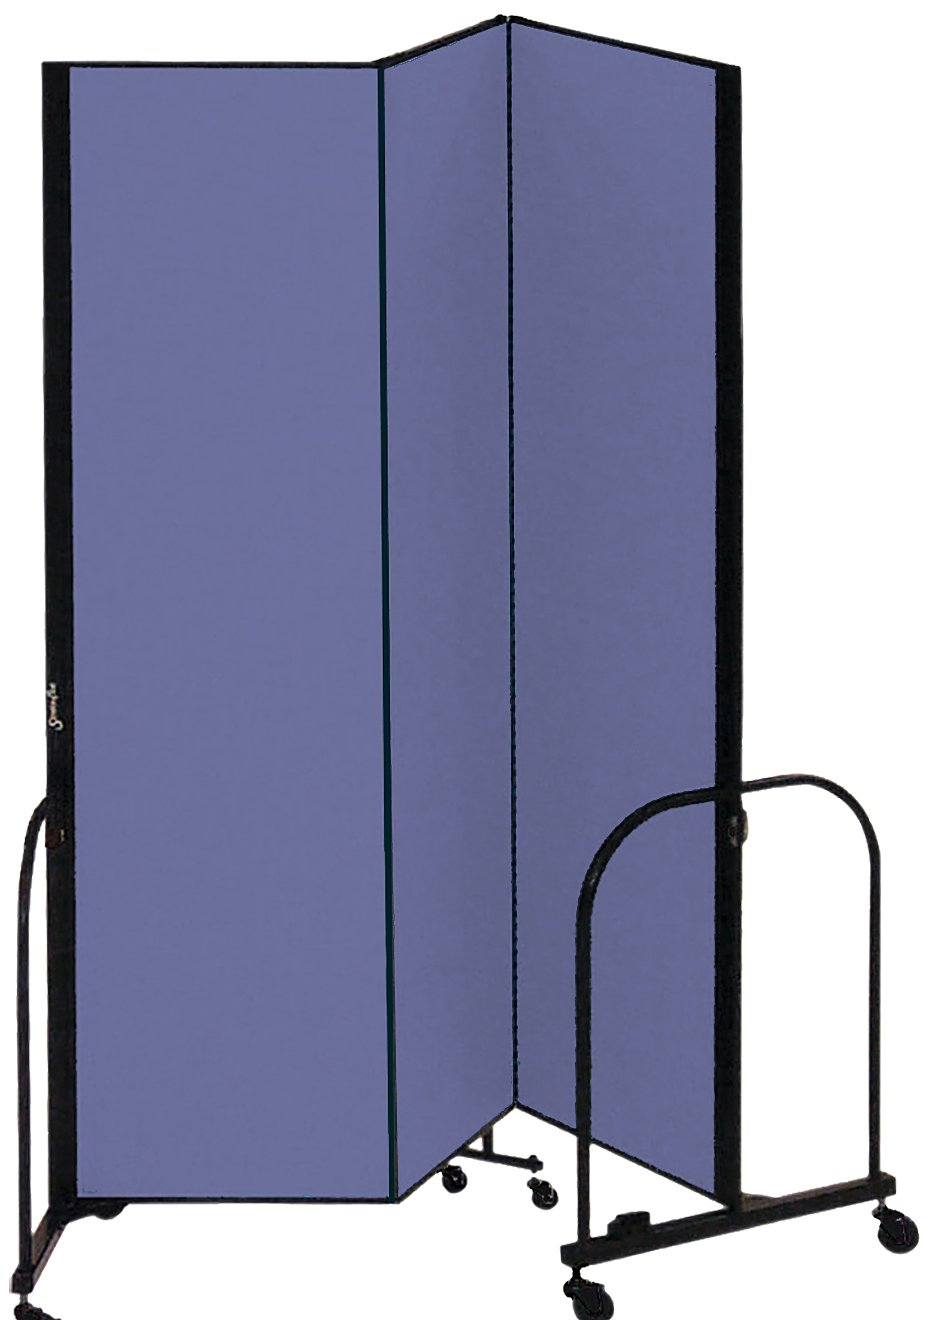 Screenflex Commercial Portable Room Divider (CFSL803-DS) 8 Feet High by 5 Feet 9 Inches Long, Designer Blue Fabric